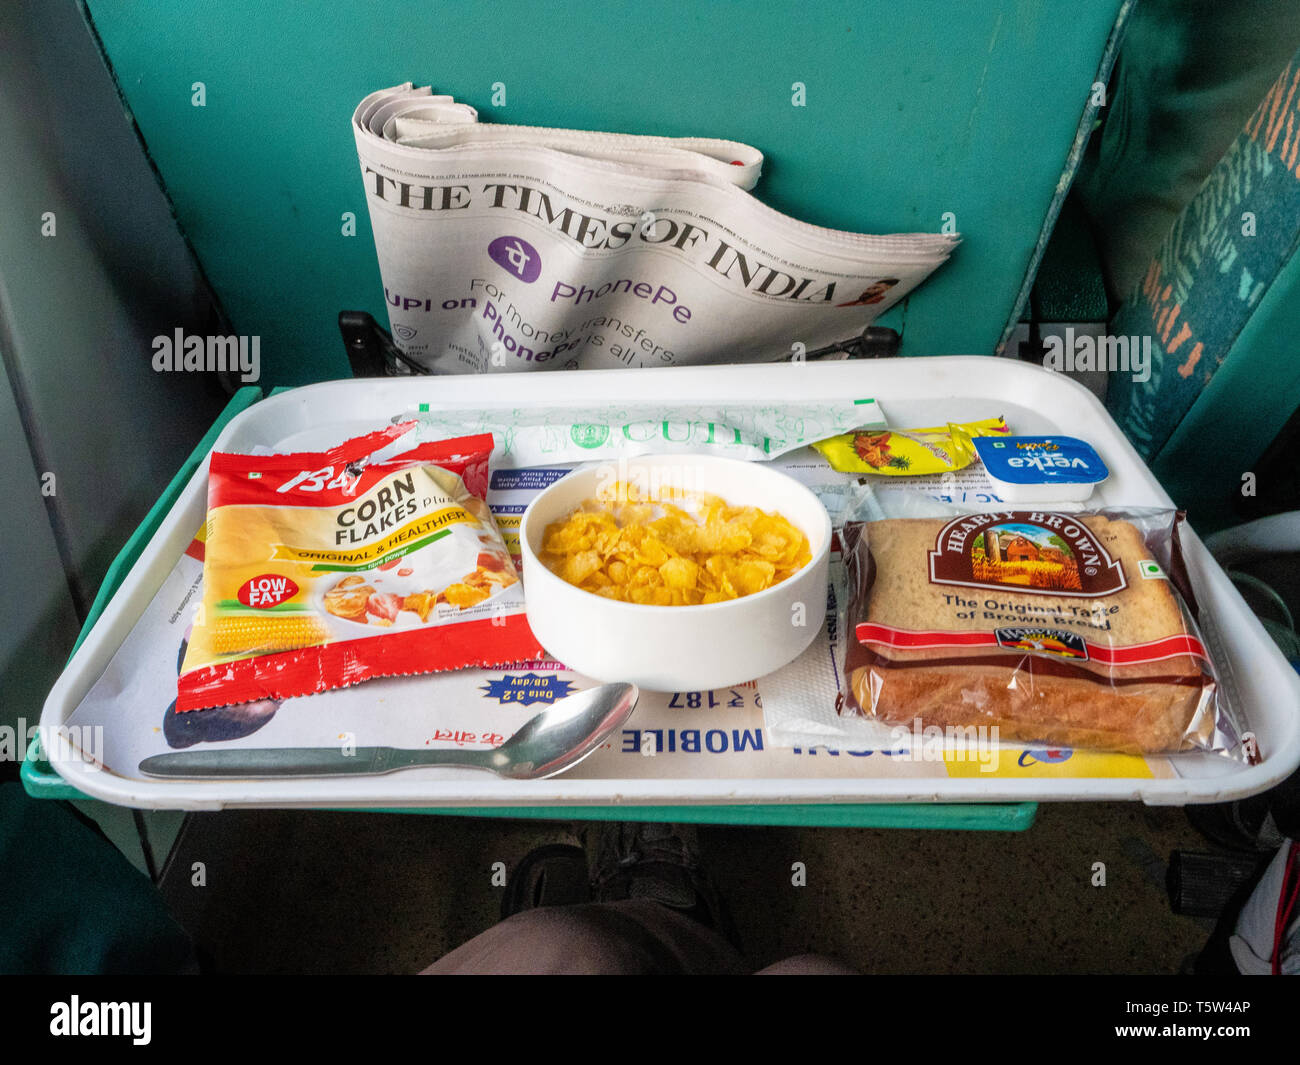 First class seat on Indian Railways express train with a copy of the Indian Times and complimentary breakfast with packeted toast and Corn Flakes - Stock Image